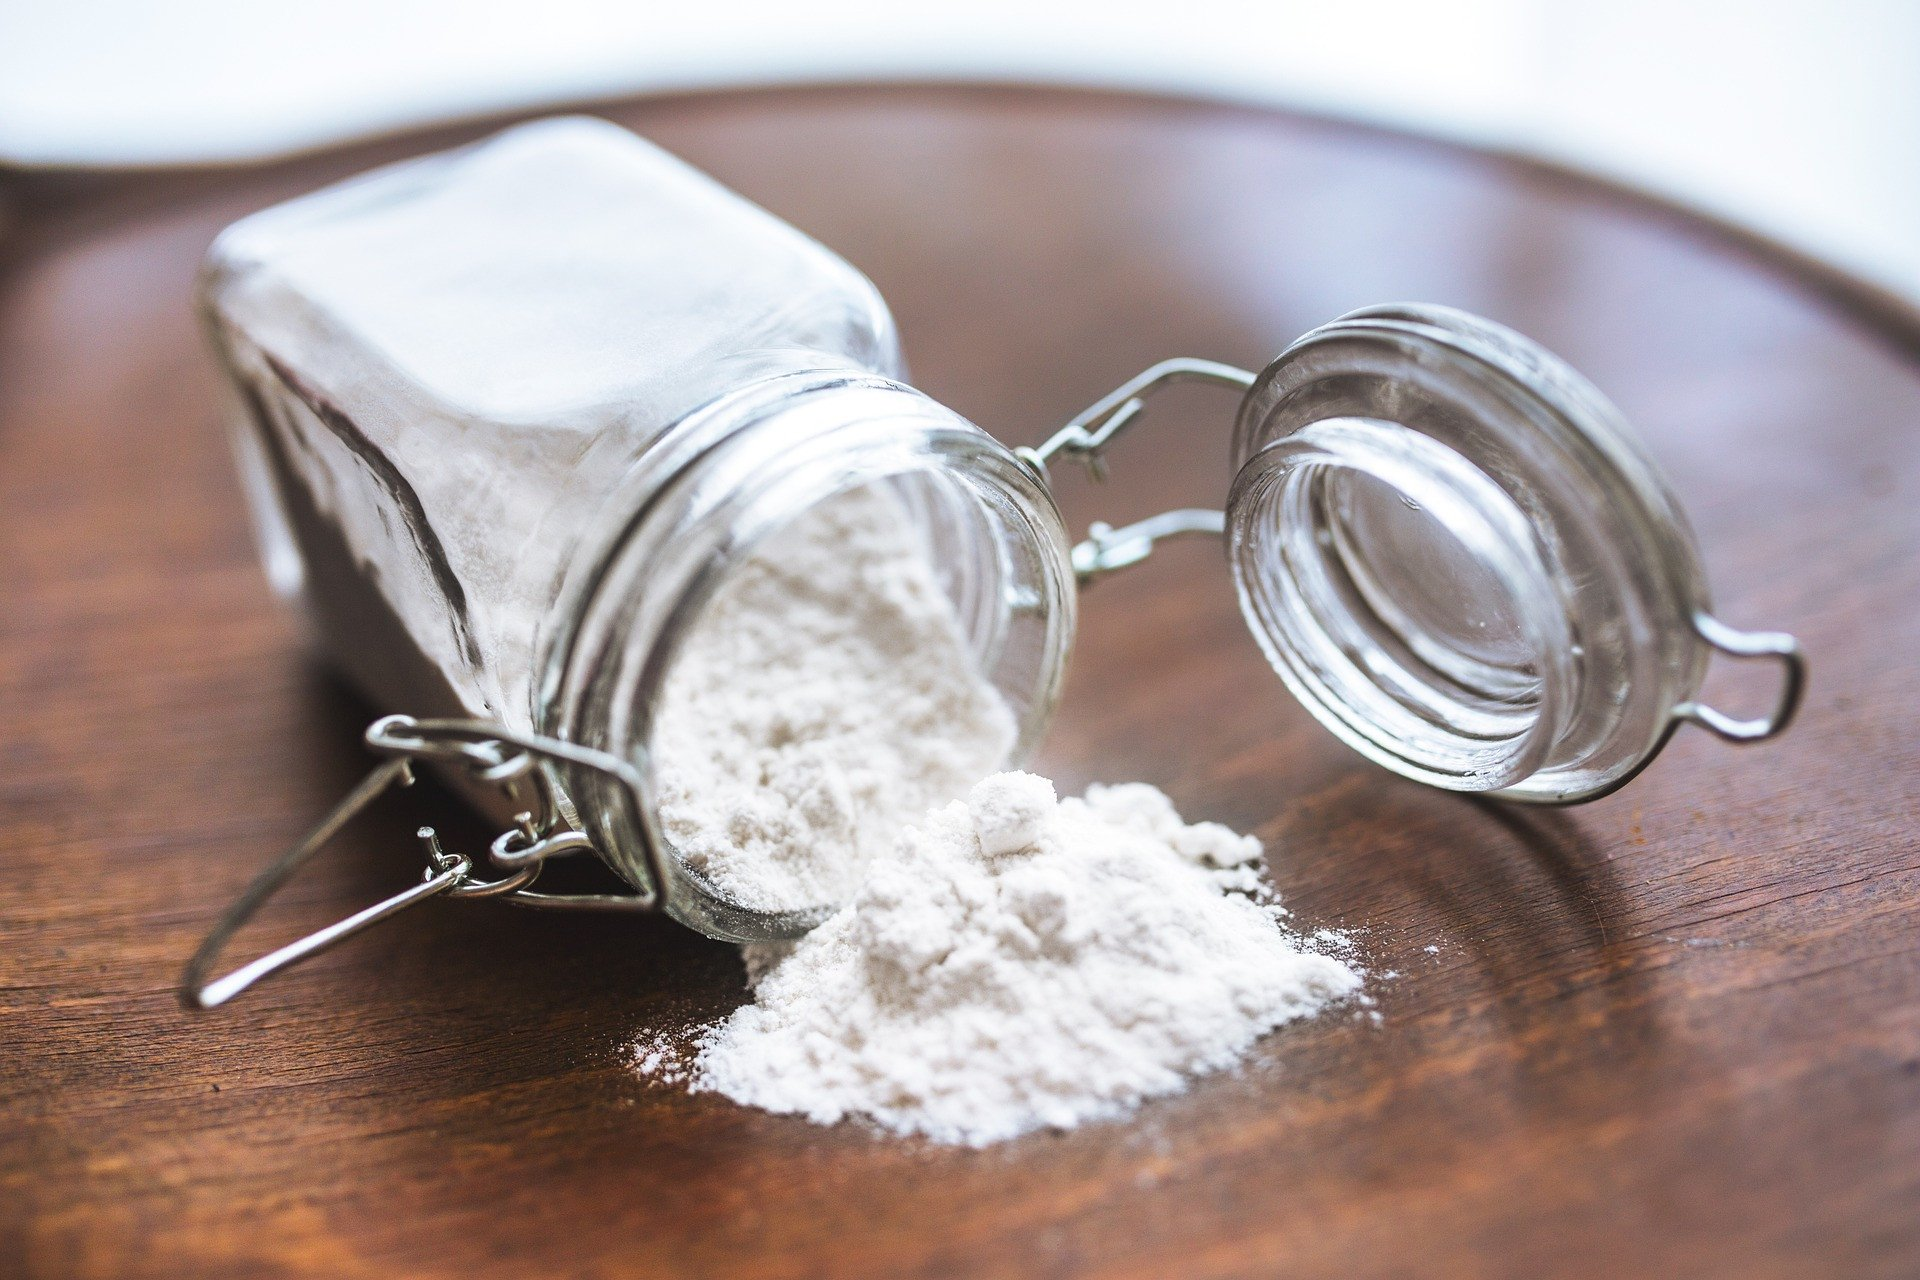 Strengthen Bones, These 7 Benefits of Tapioca Flour that are Rarely Known - JPNN.com